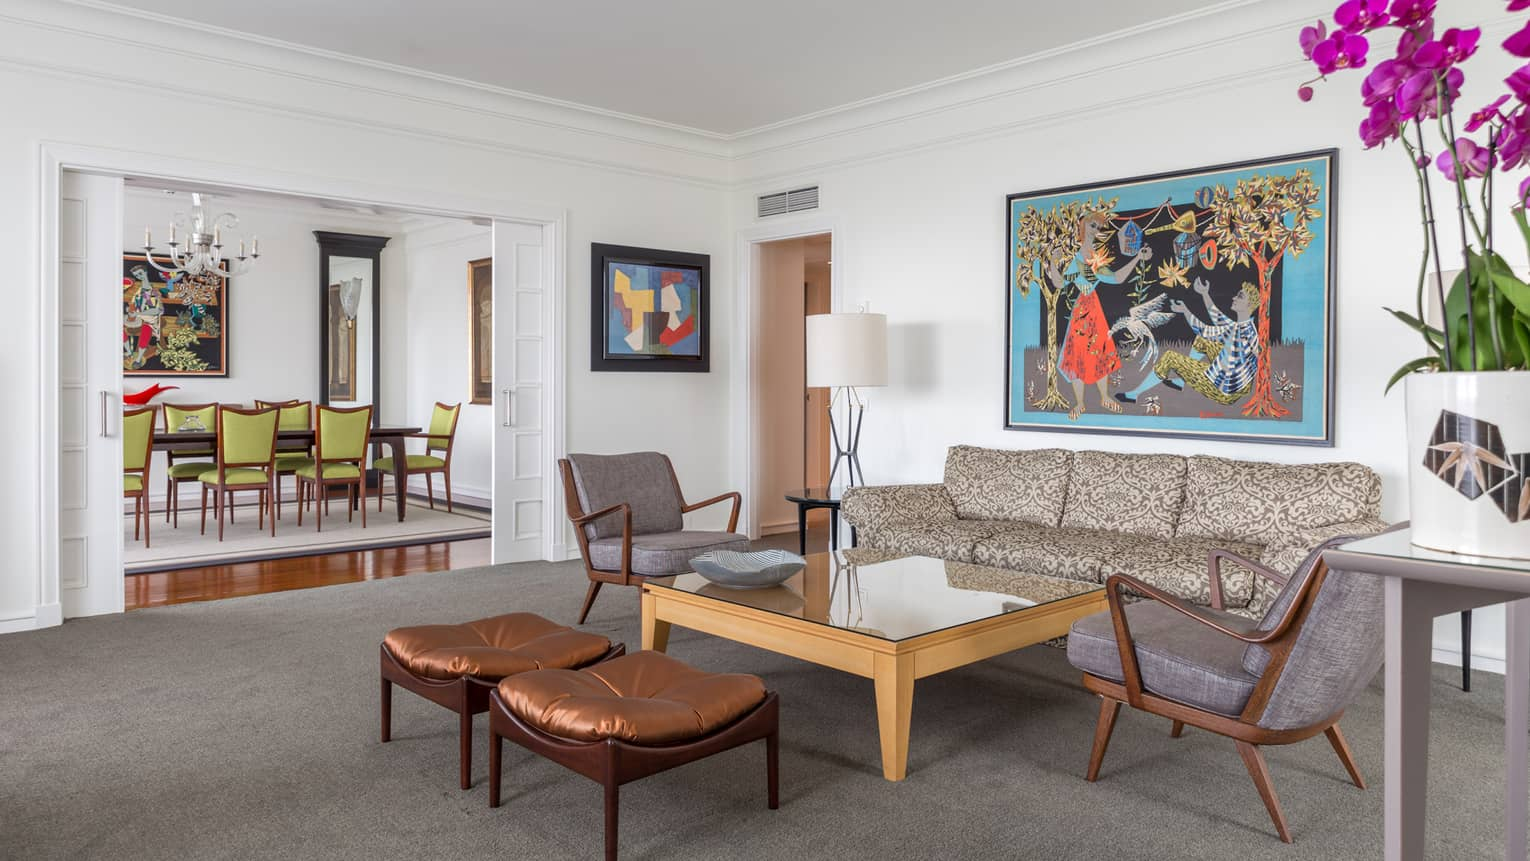 Residency Suite with mid-century modern living room vignette, colorful painting and dining room view